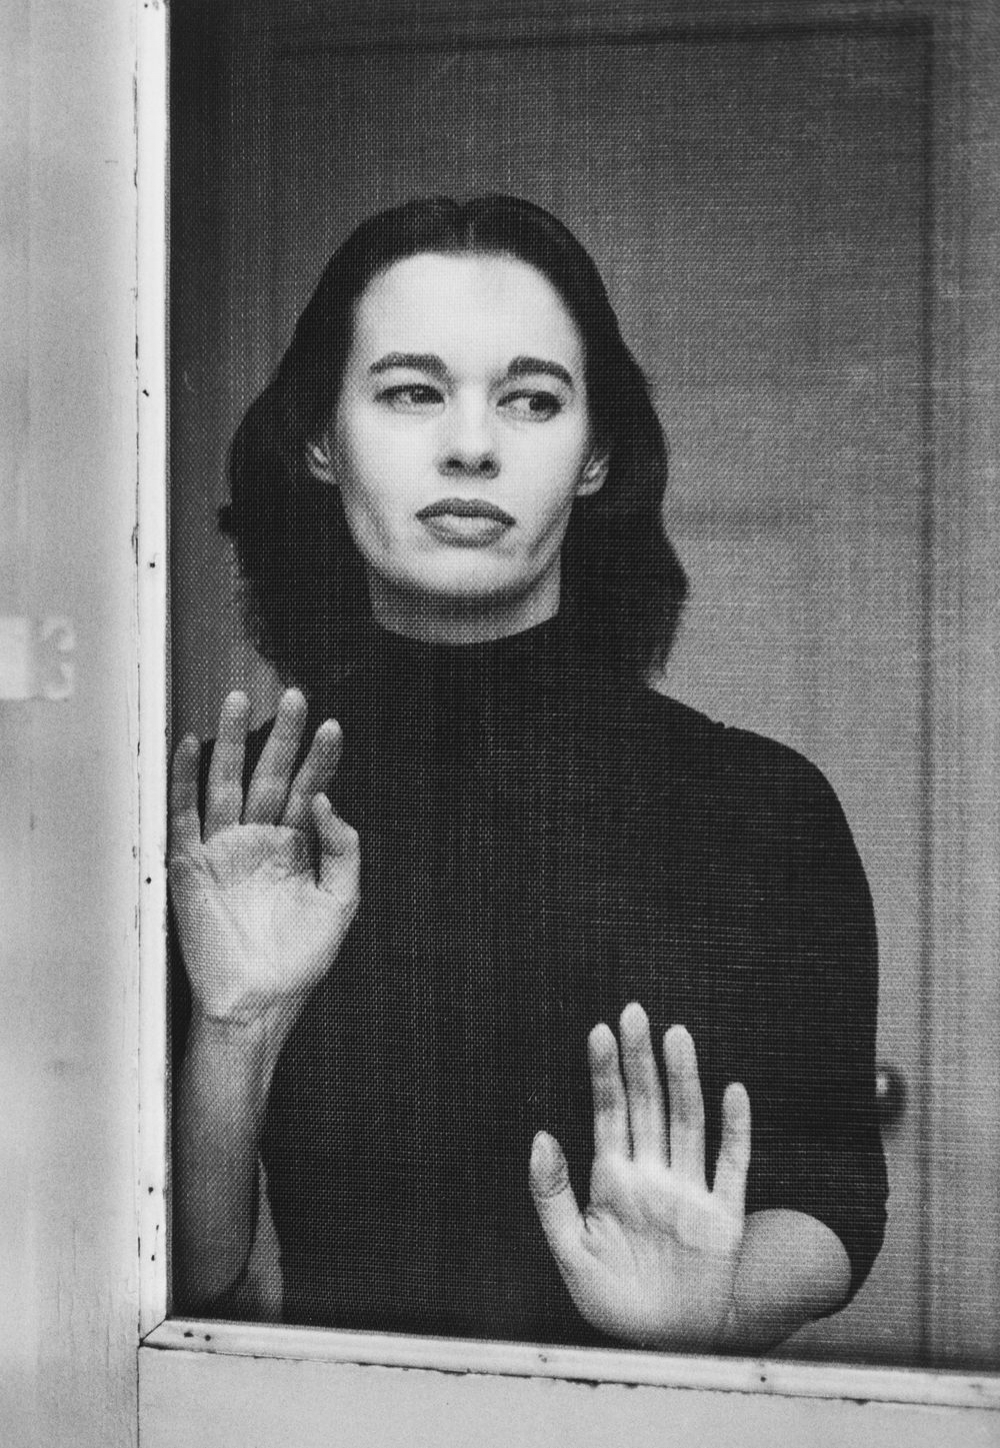 cinge-morath,-gloria-vanderbilt,-new-york,-usa,-1956.jpg